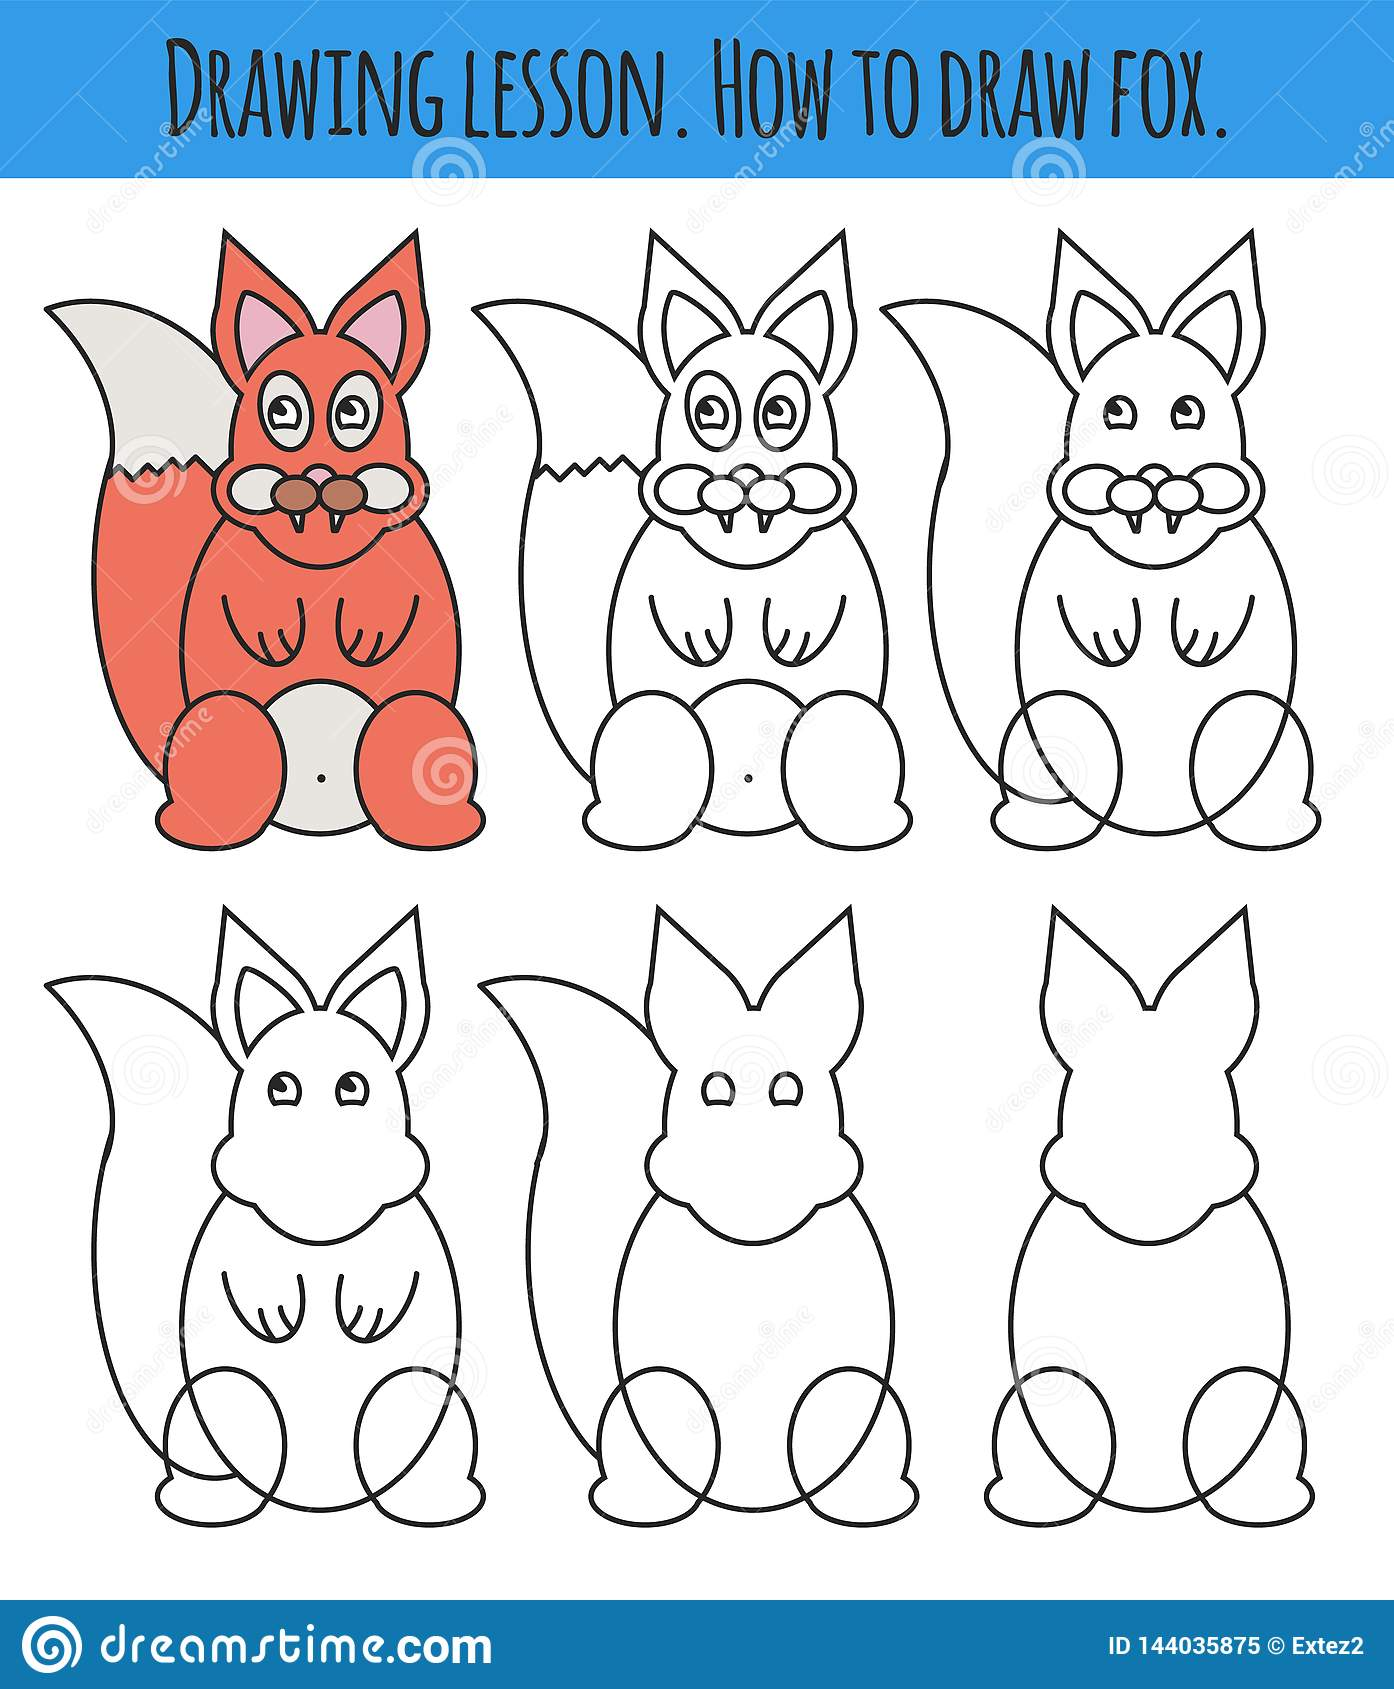 Drawing Lesson For Children How Draw A Cartoon Cute Fox